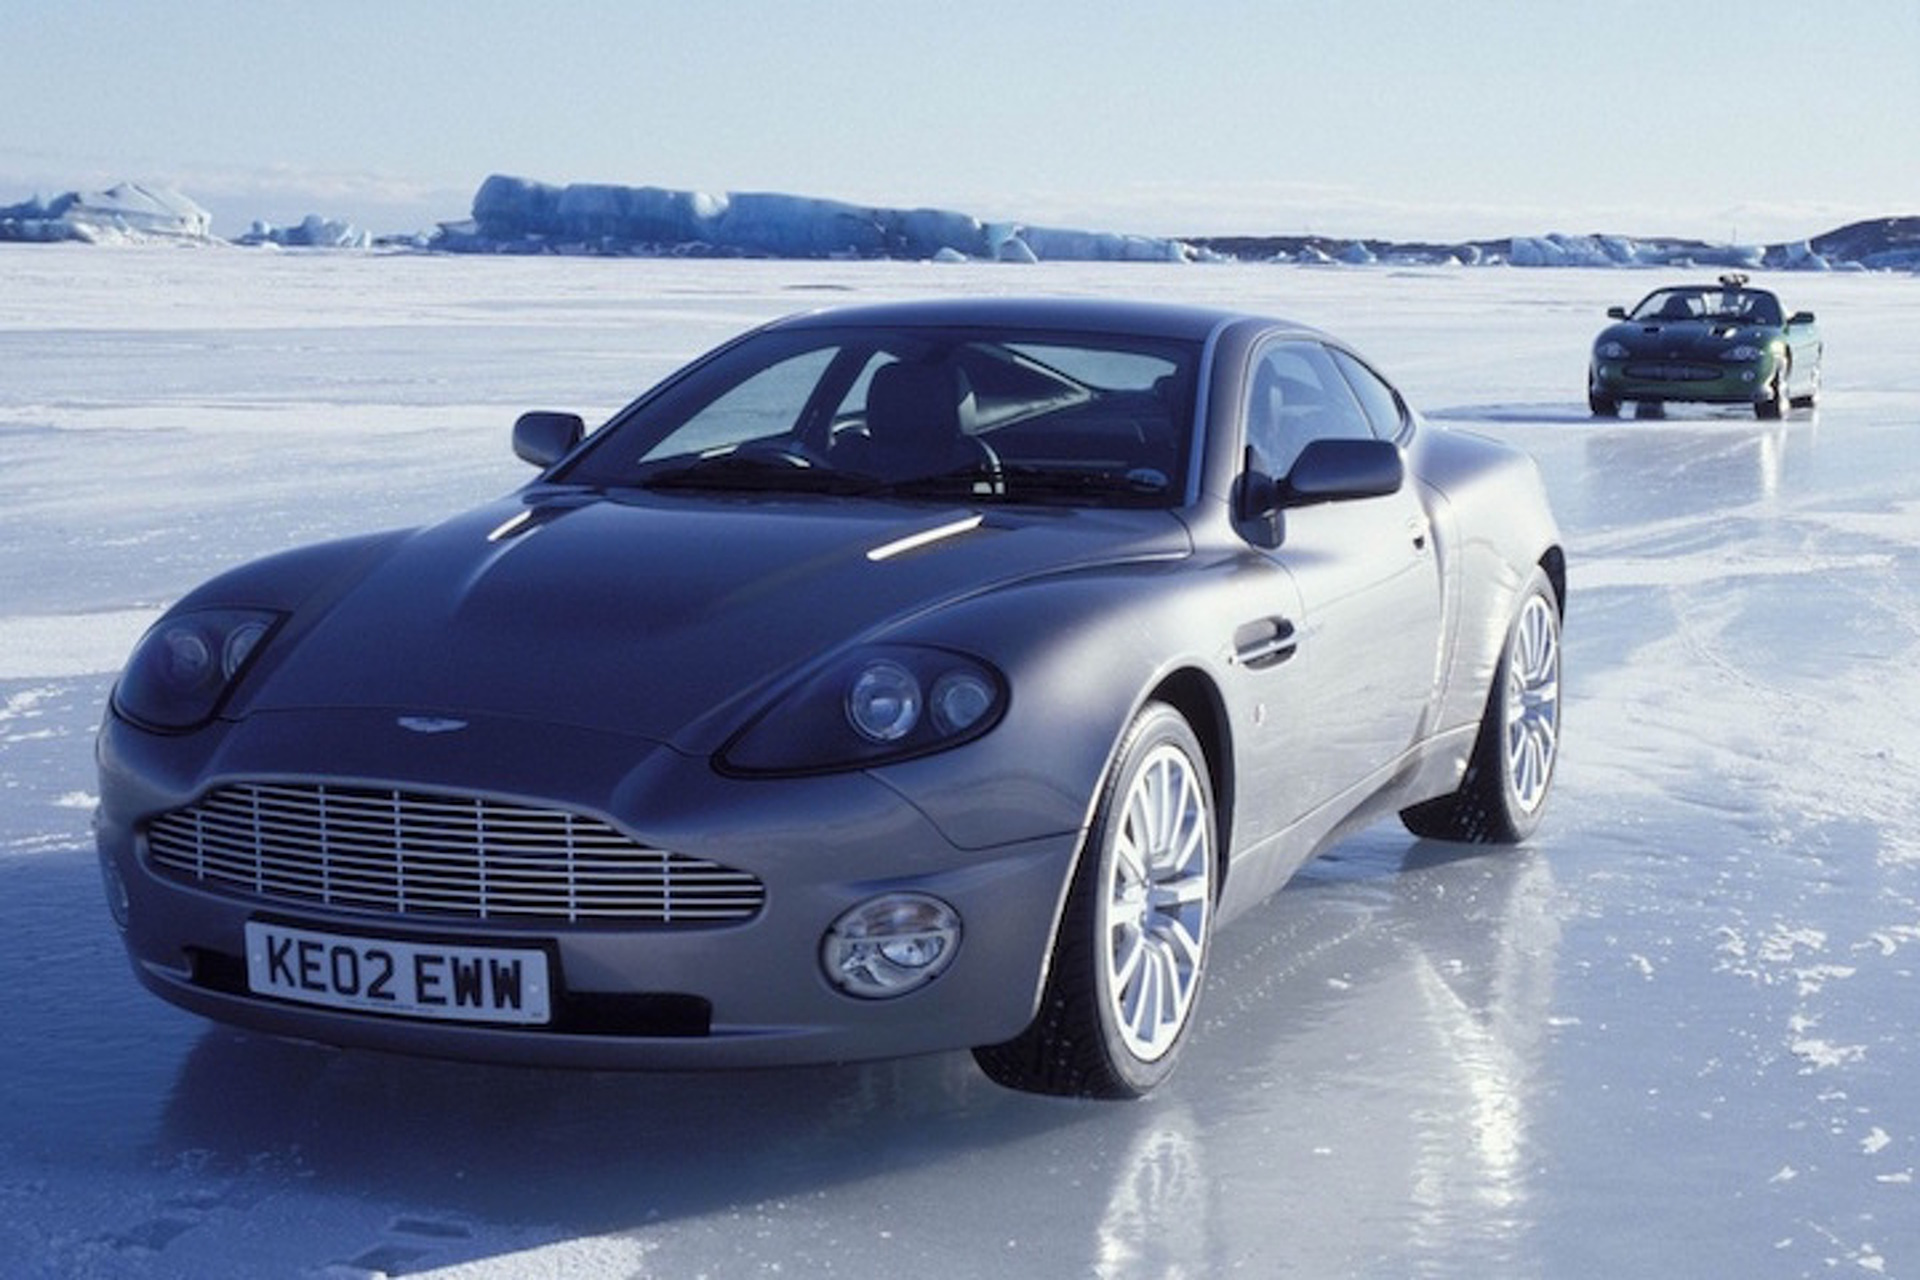 The 10 Most Expensive Bond Cars Ever Sold at Auction